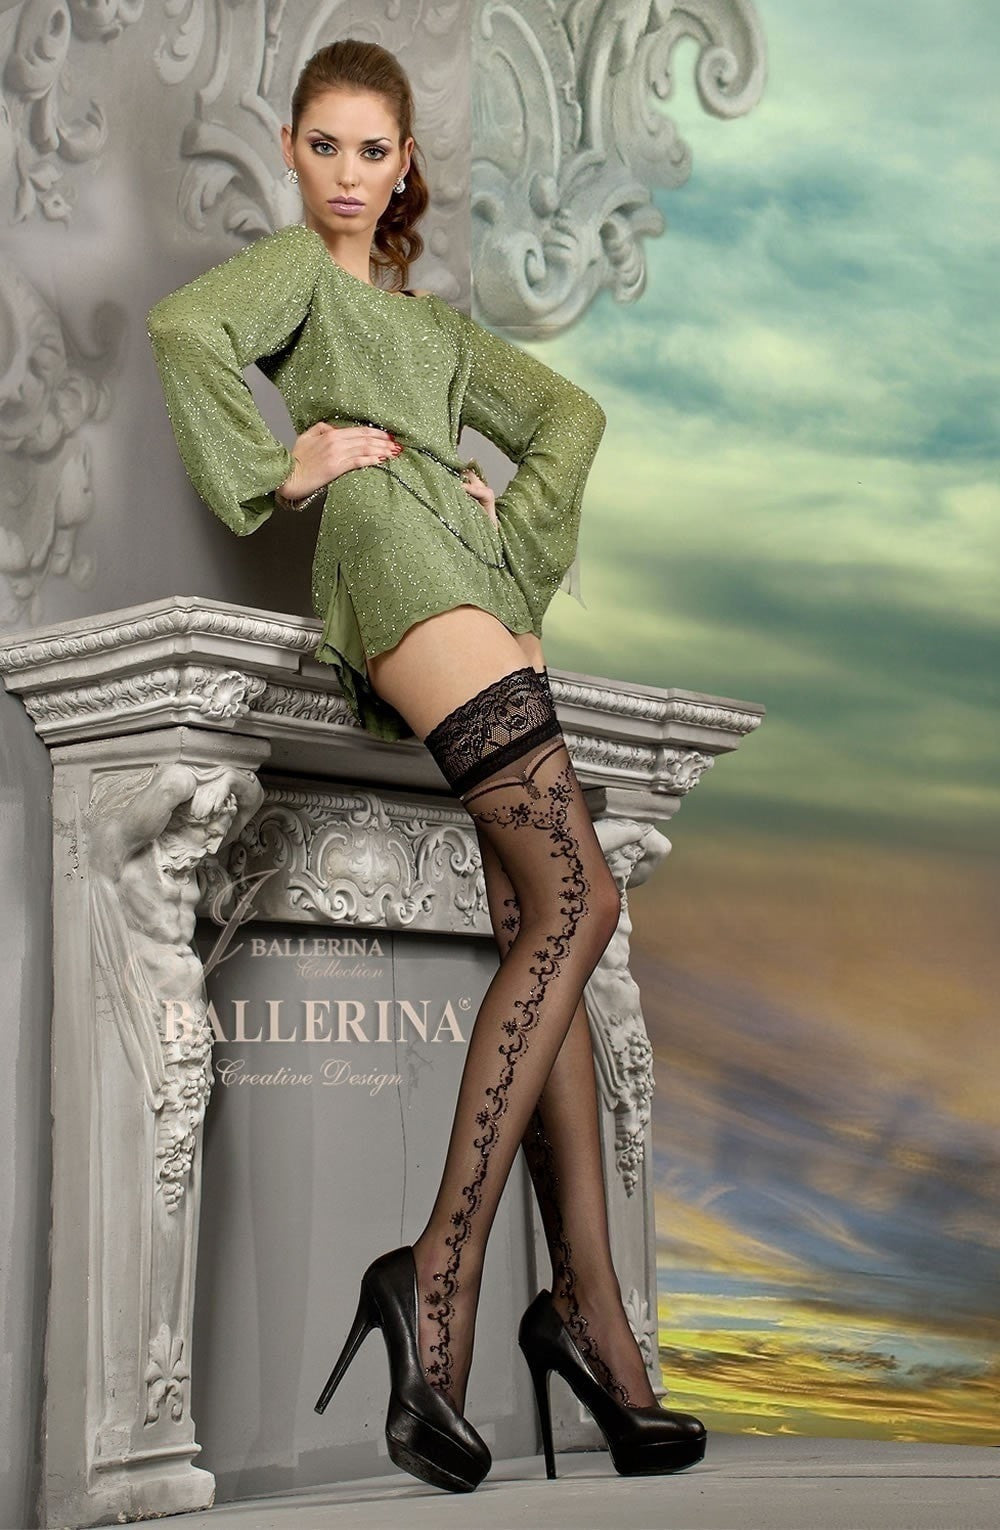 Ballerina Hold Ups 216 (Black) - Hold Up Stockings - Ballerina - Charm and Lace Boutique